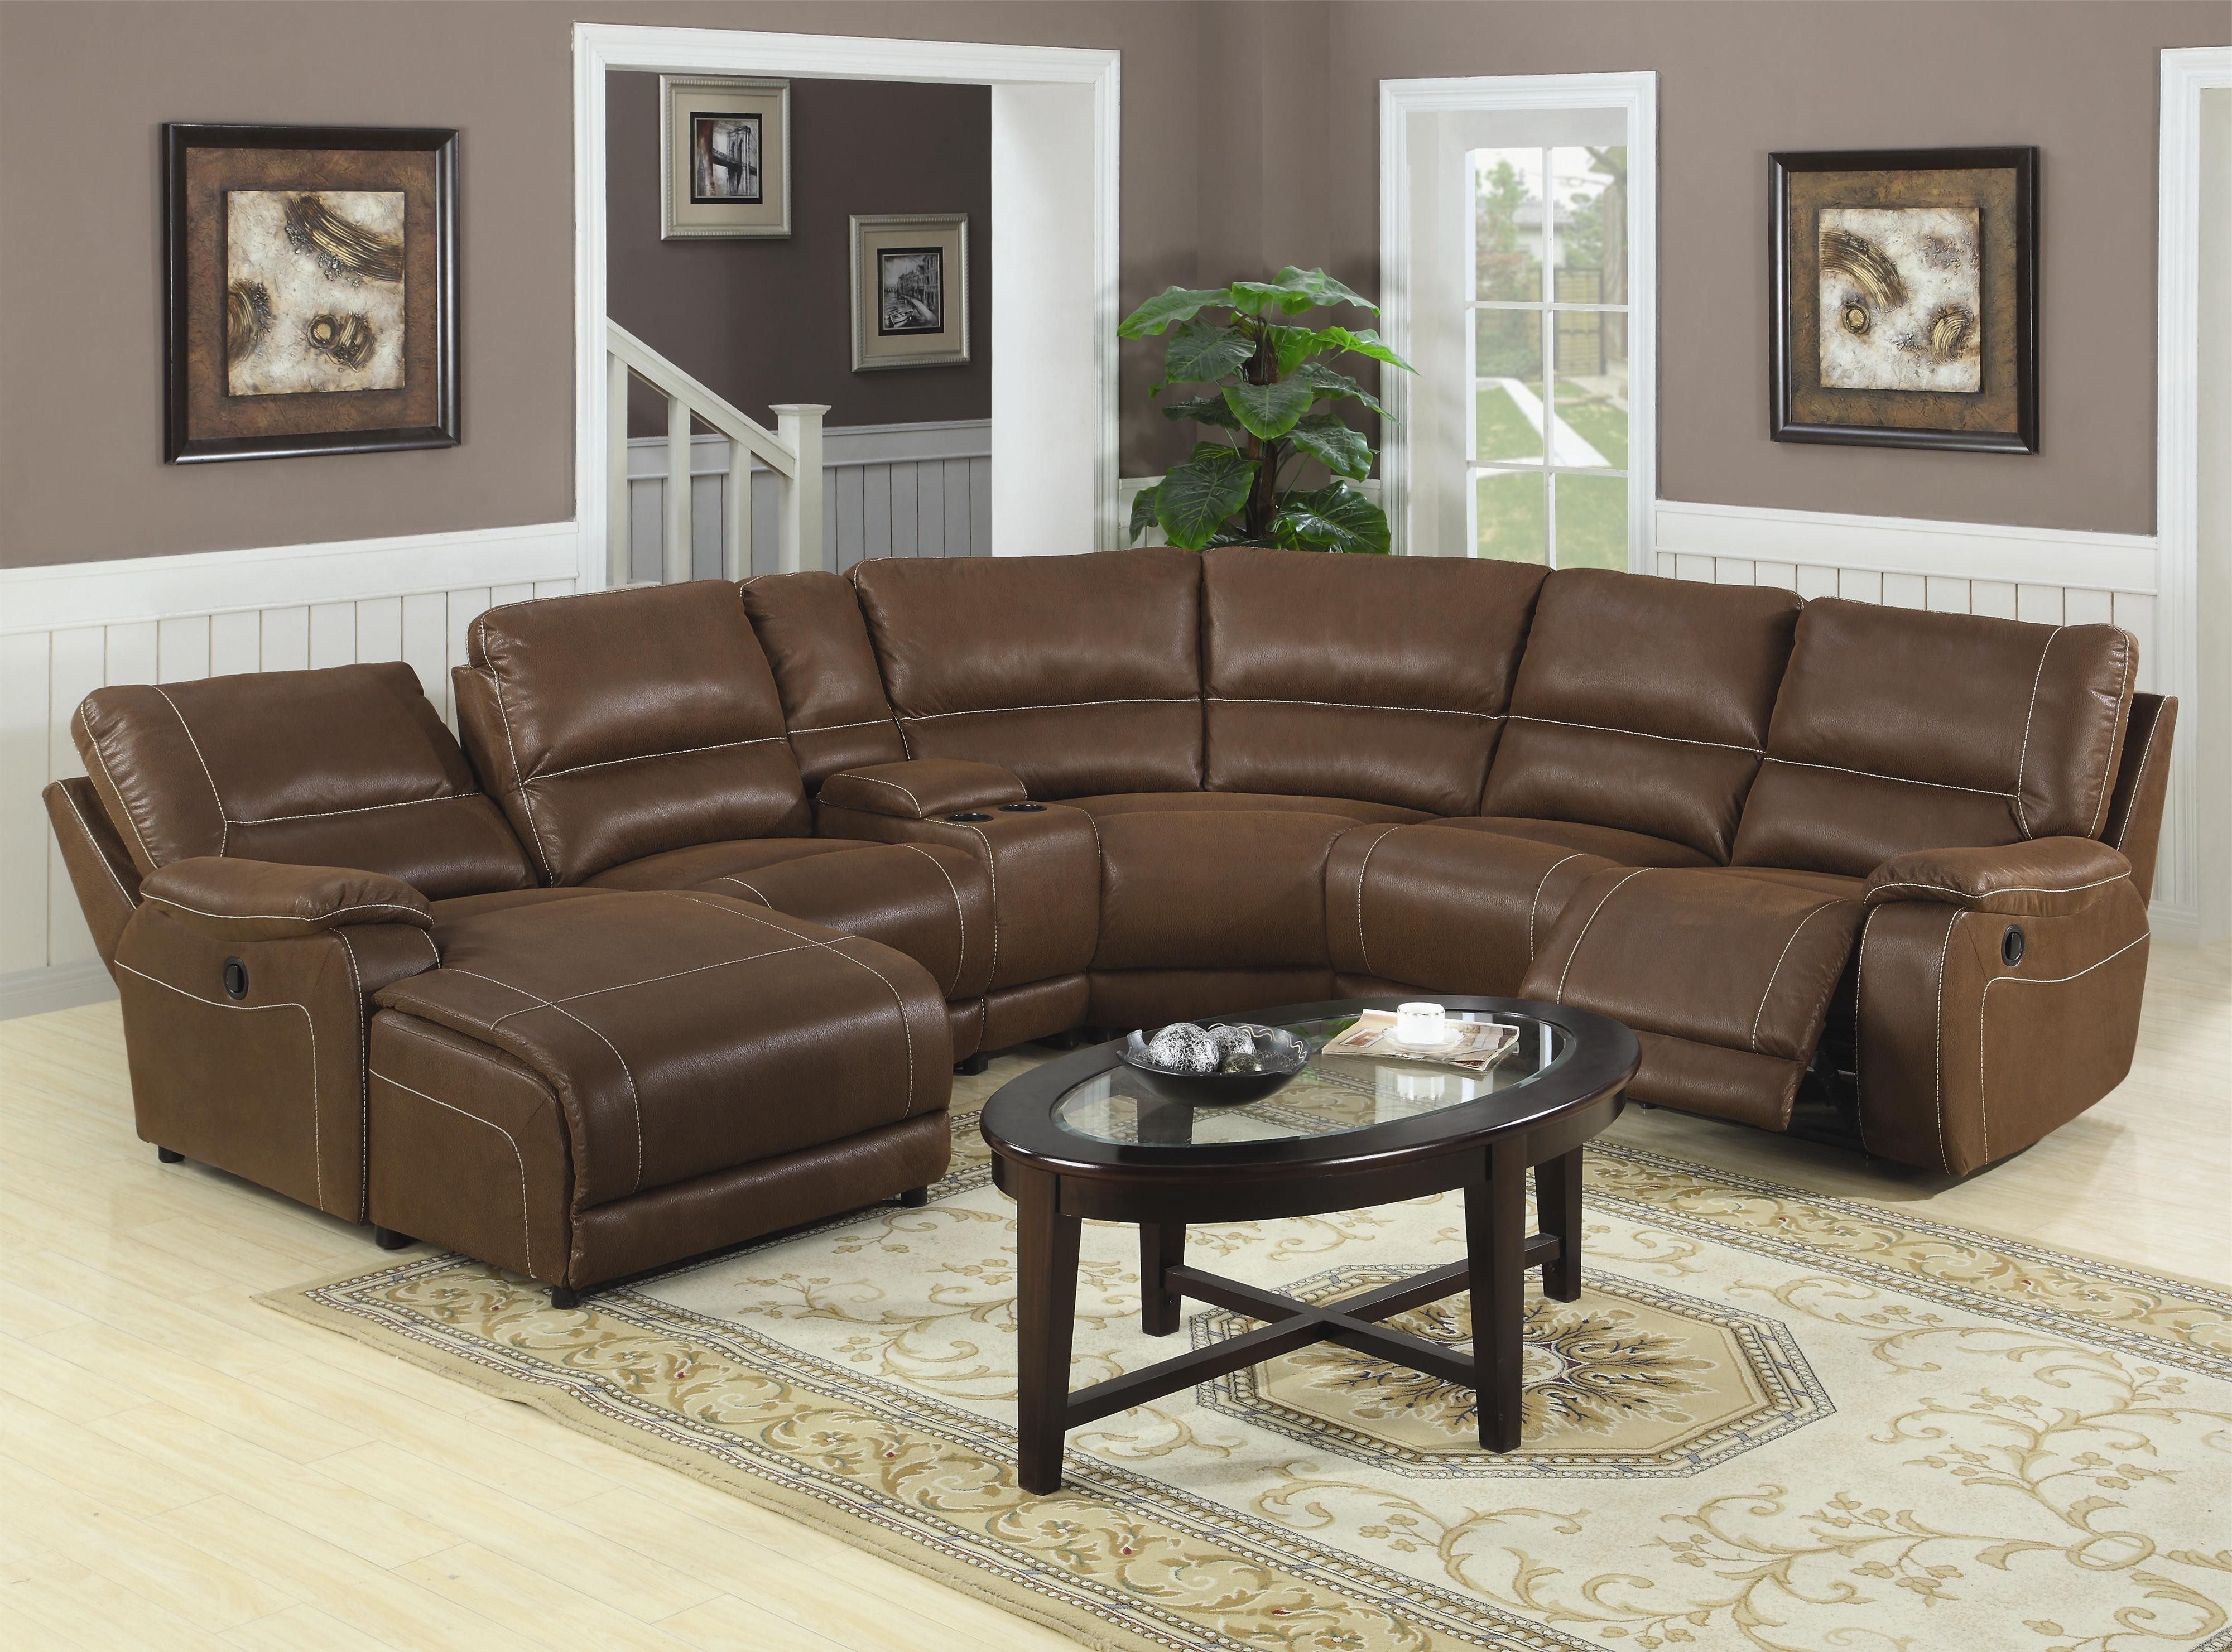 Microfiber Sectional Sofas With Preferred Sofa : Ashley Maier Sectional Sofa Laura Ashley Sectional Sofa (View 5 of 15)